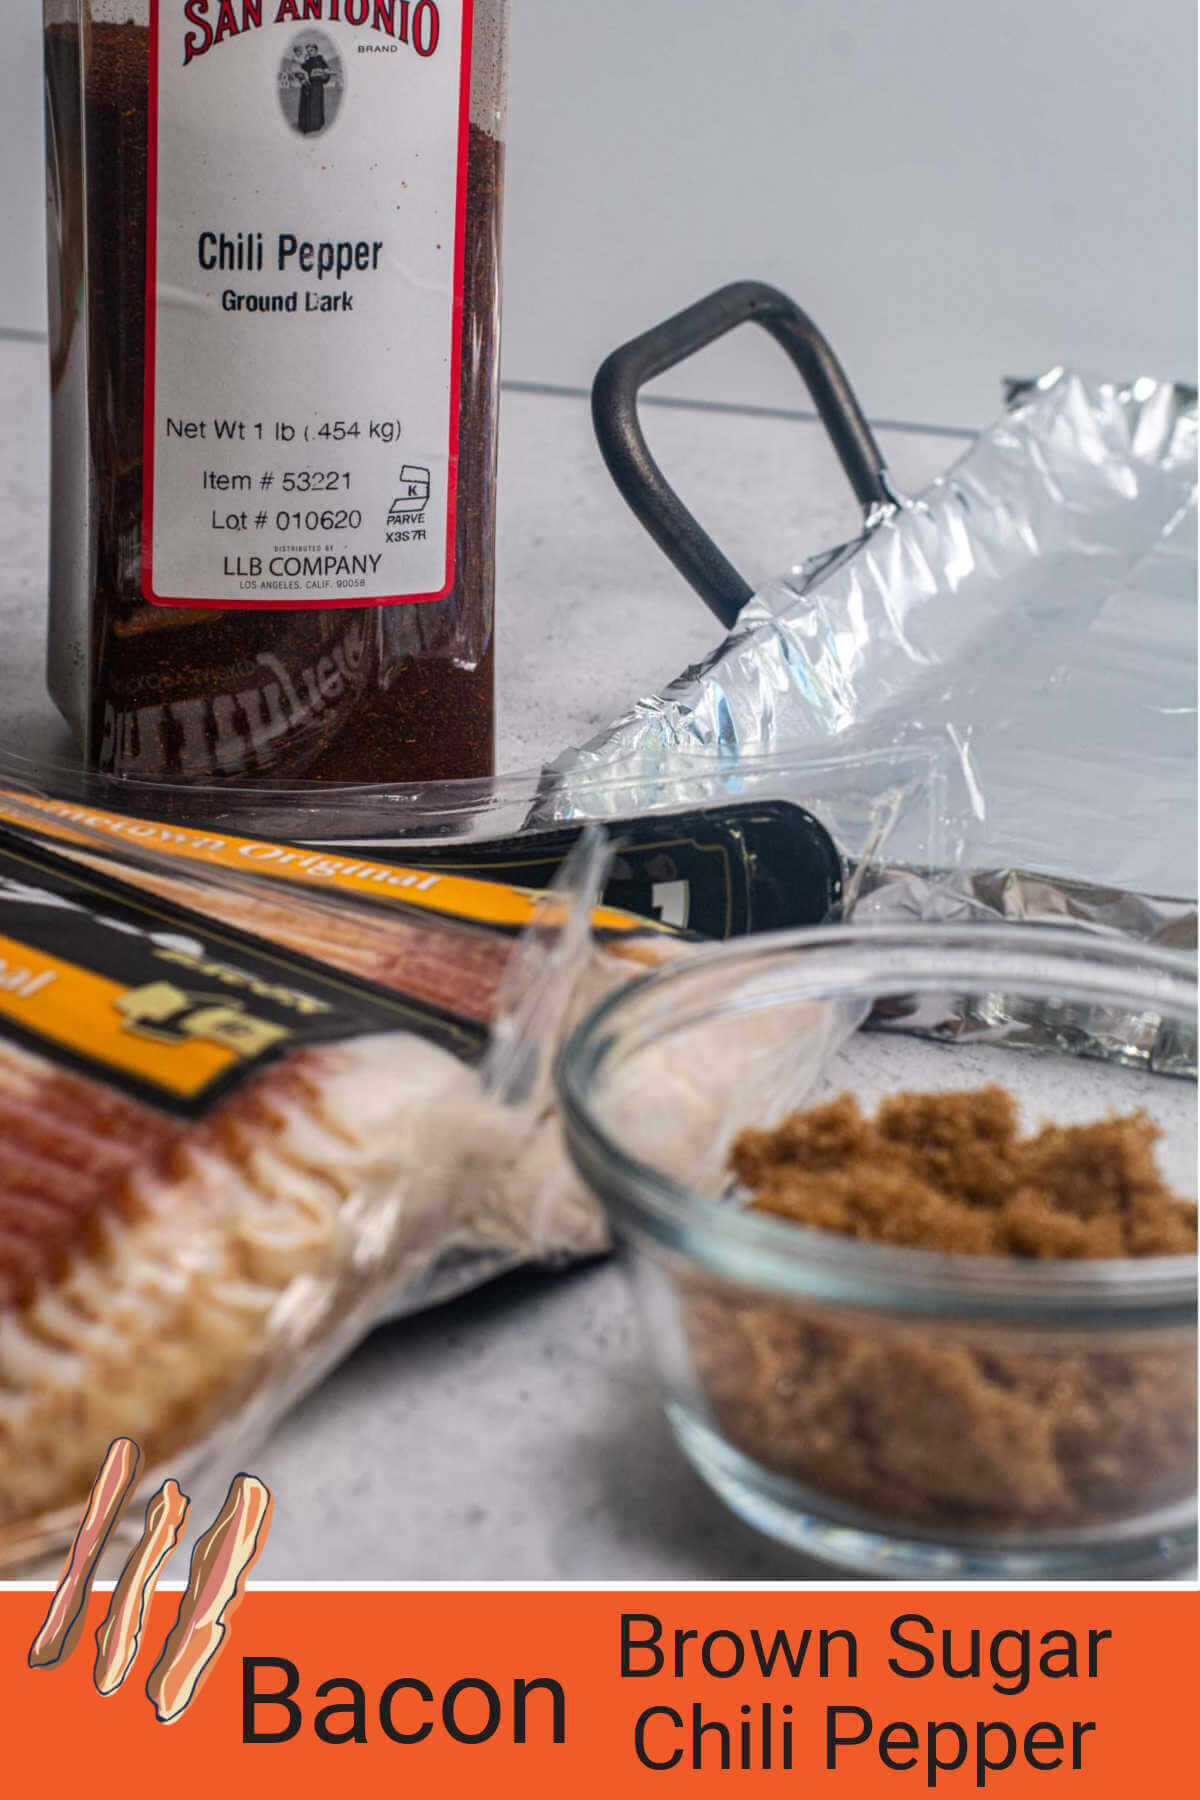 ingredient photo showing bacon, chili pepper, and brown sugar.